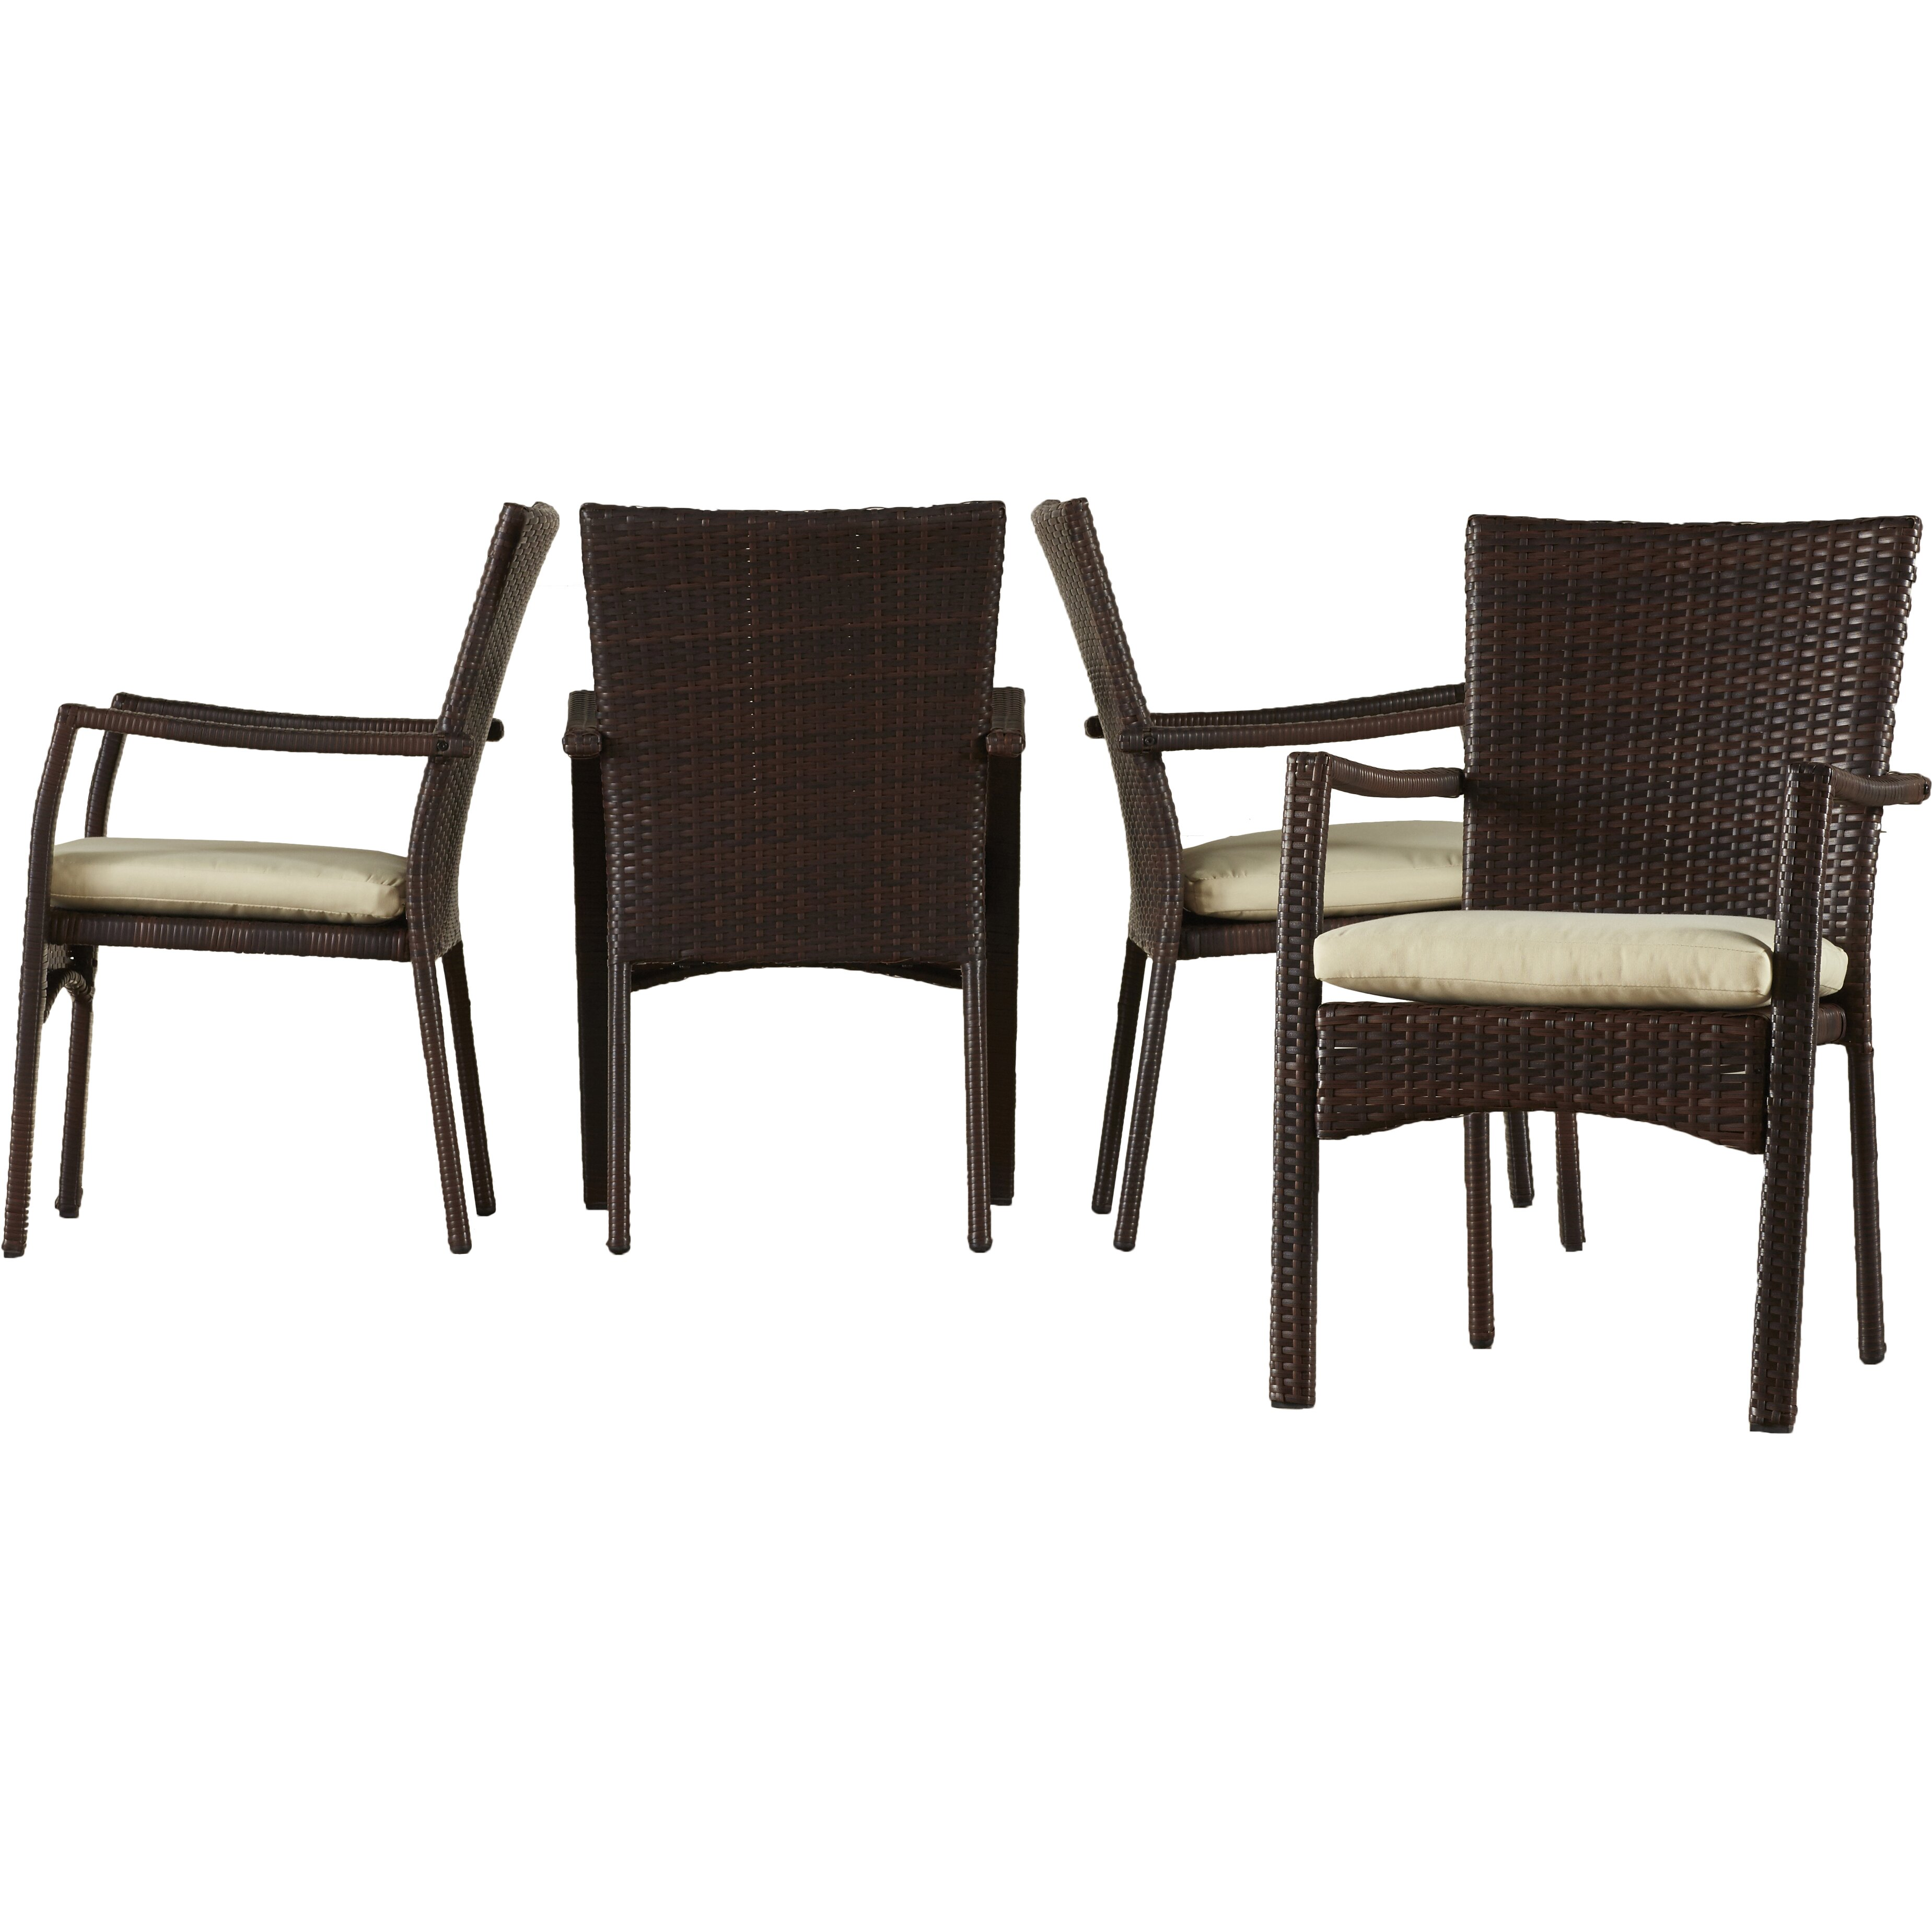 Beachcrest home brandon 5 piece dining set with cushion for Home piece